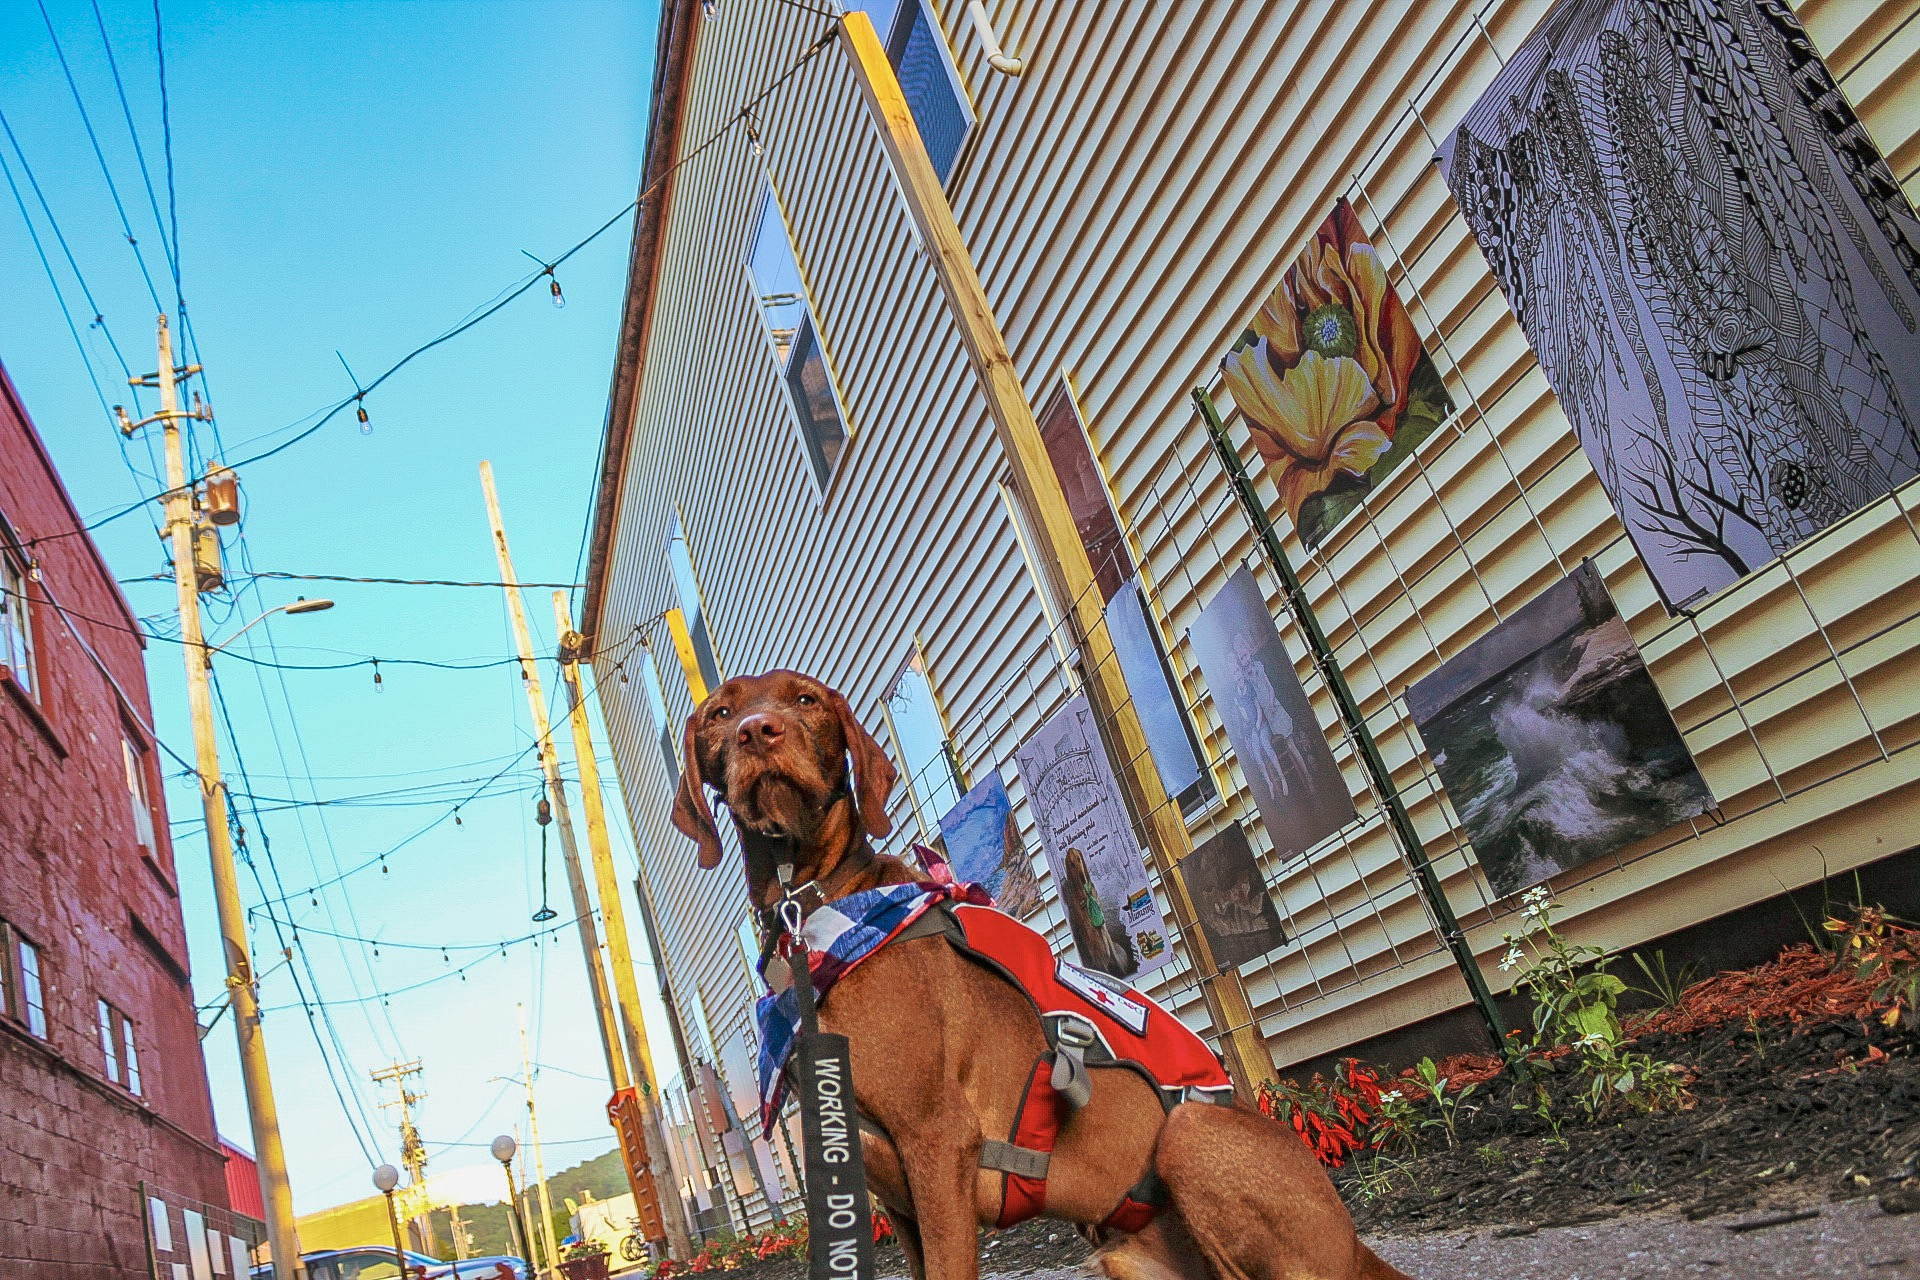 Piper looks majestically toward the camera in an ally with lights strung above him and artwork hung on the walls. He is wearing a red rufffwear pack with service dog patches, a red, white, and blue plaid bandana, and a leash wrap that says working- do not pet.